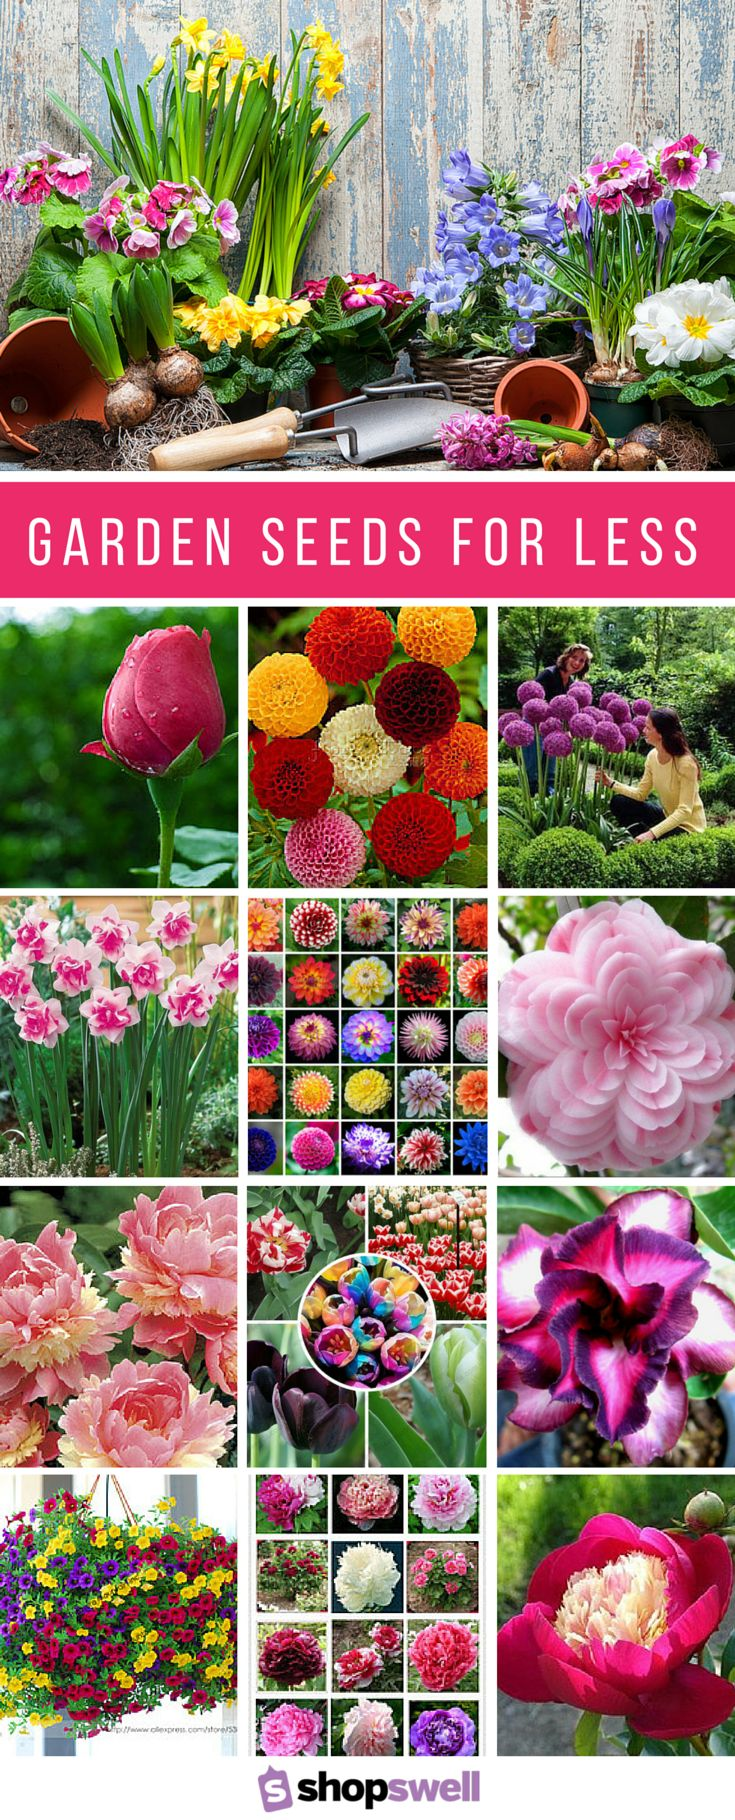 You don't necessarily have to pay high prices to get quality garden seeds. These…